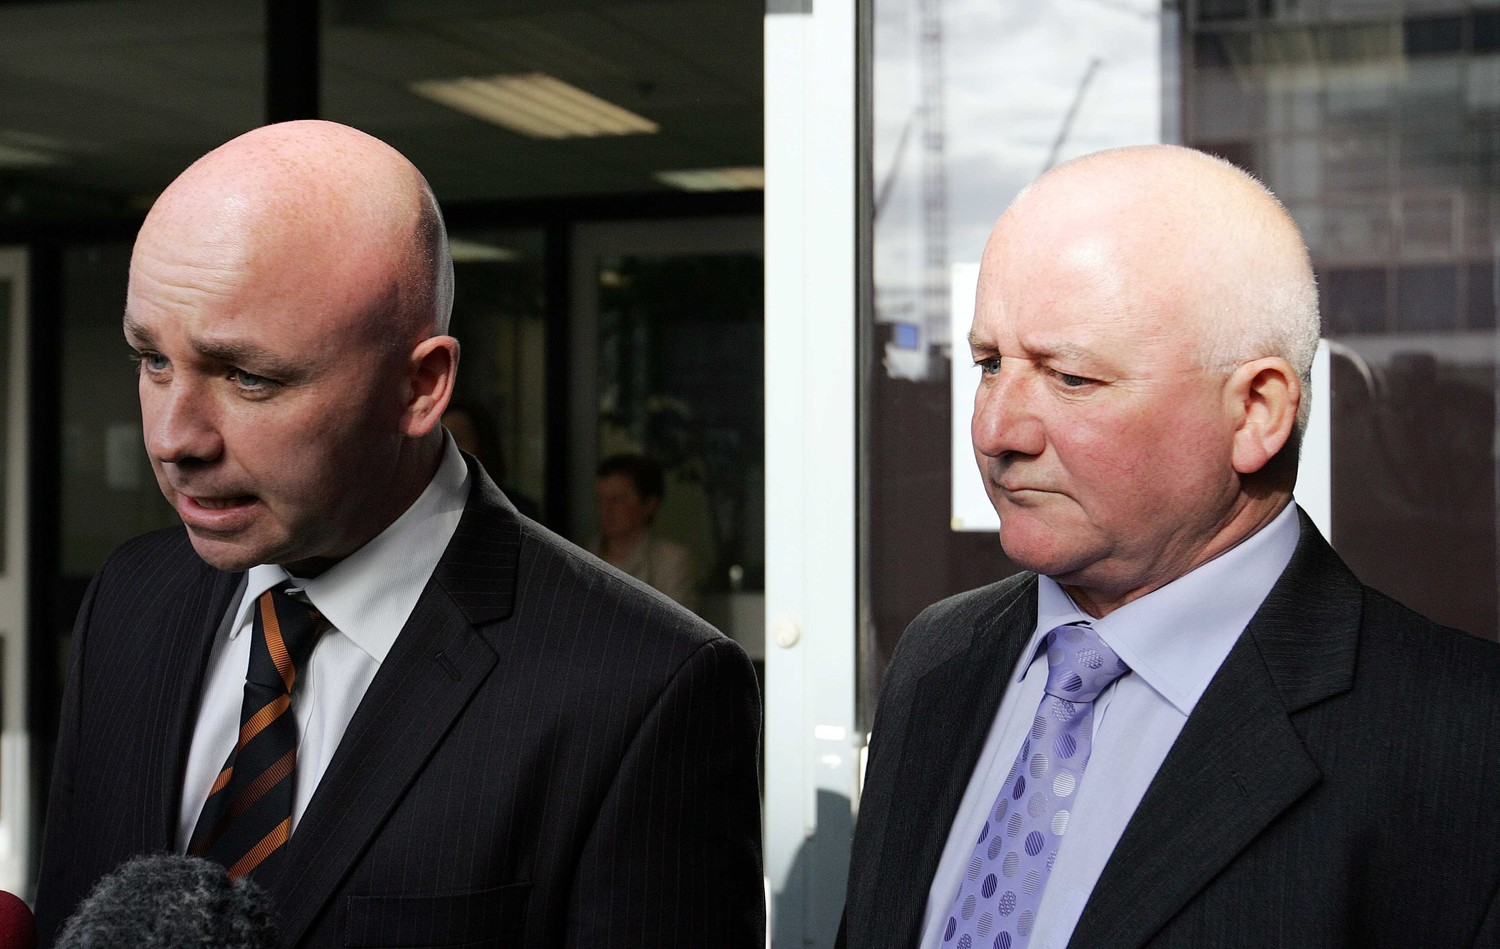 Rosemary Nelson's brothers Eunan and Tony Magee address reporters at the inquiry